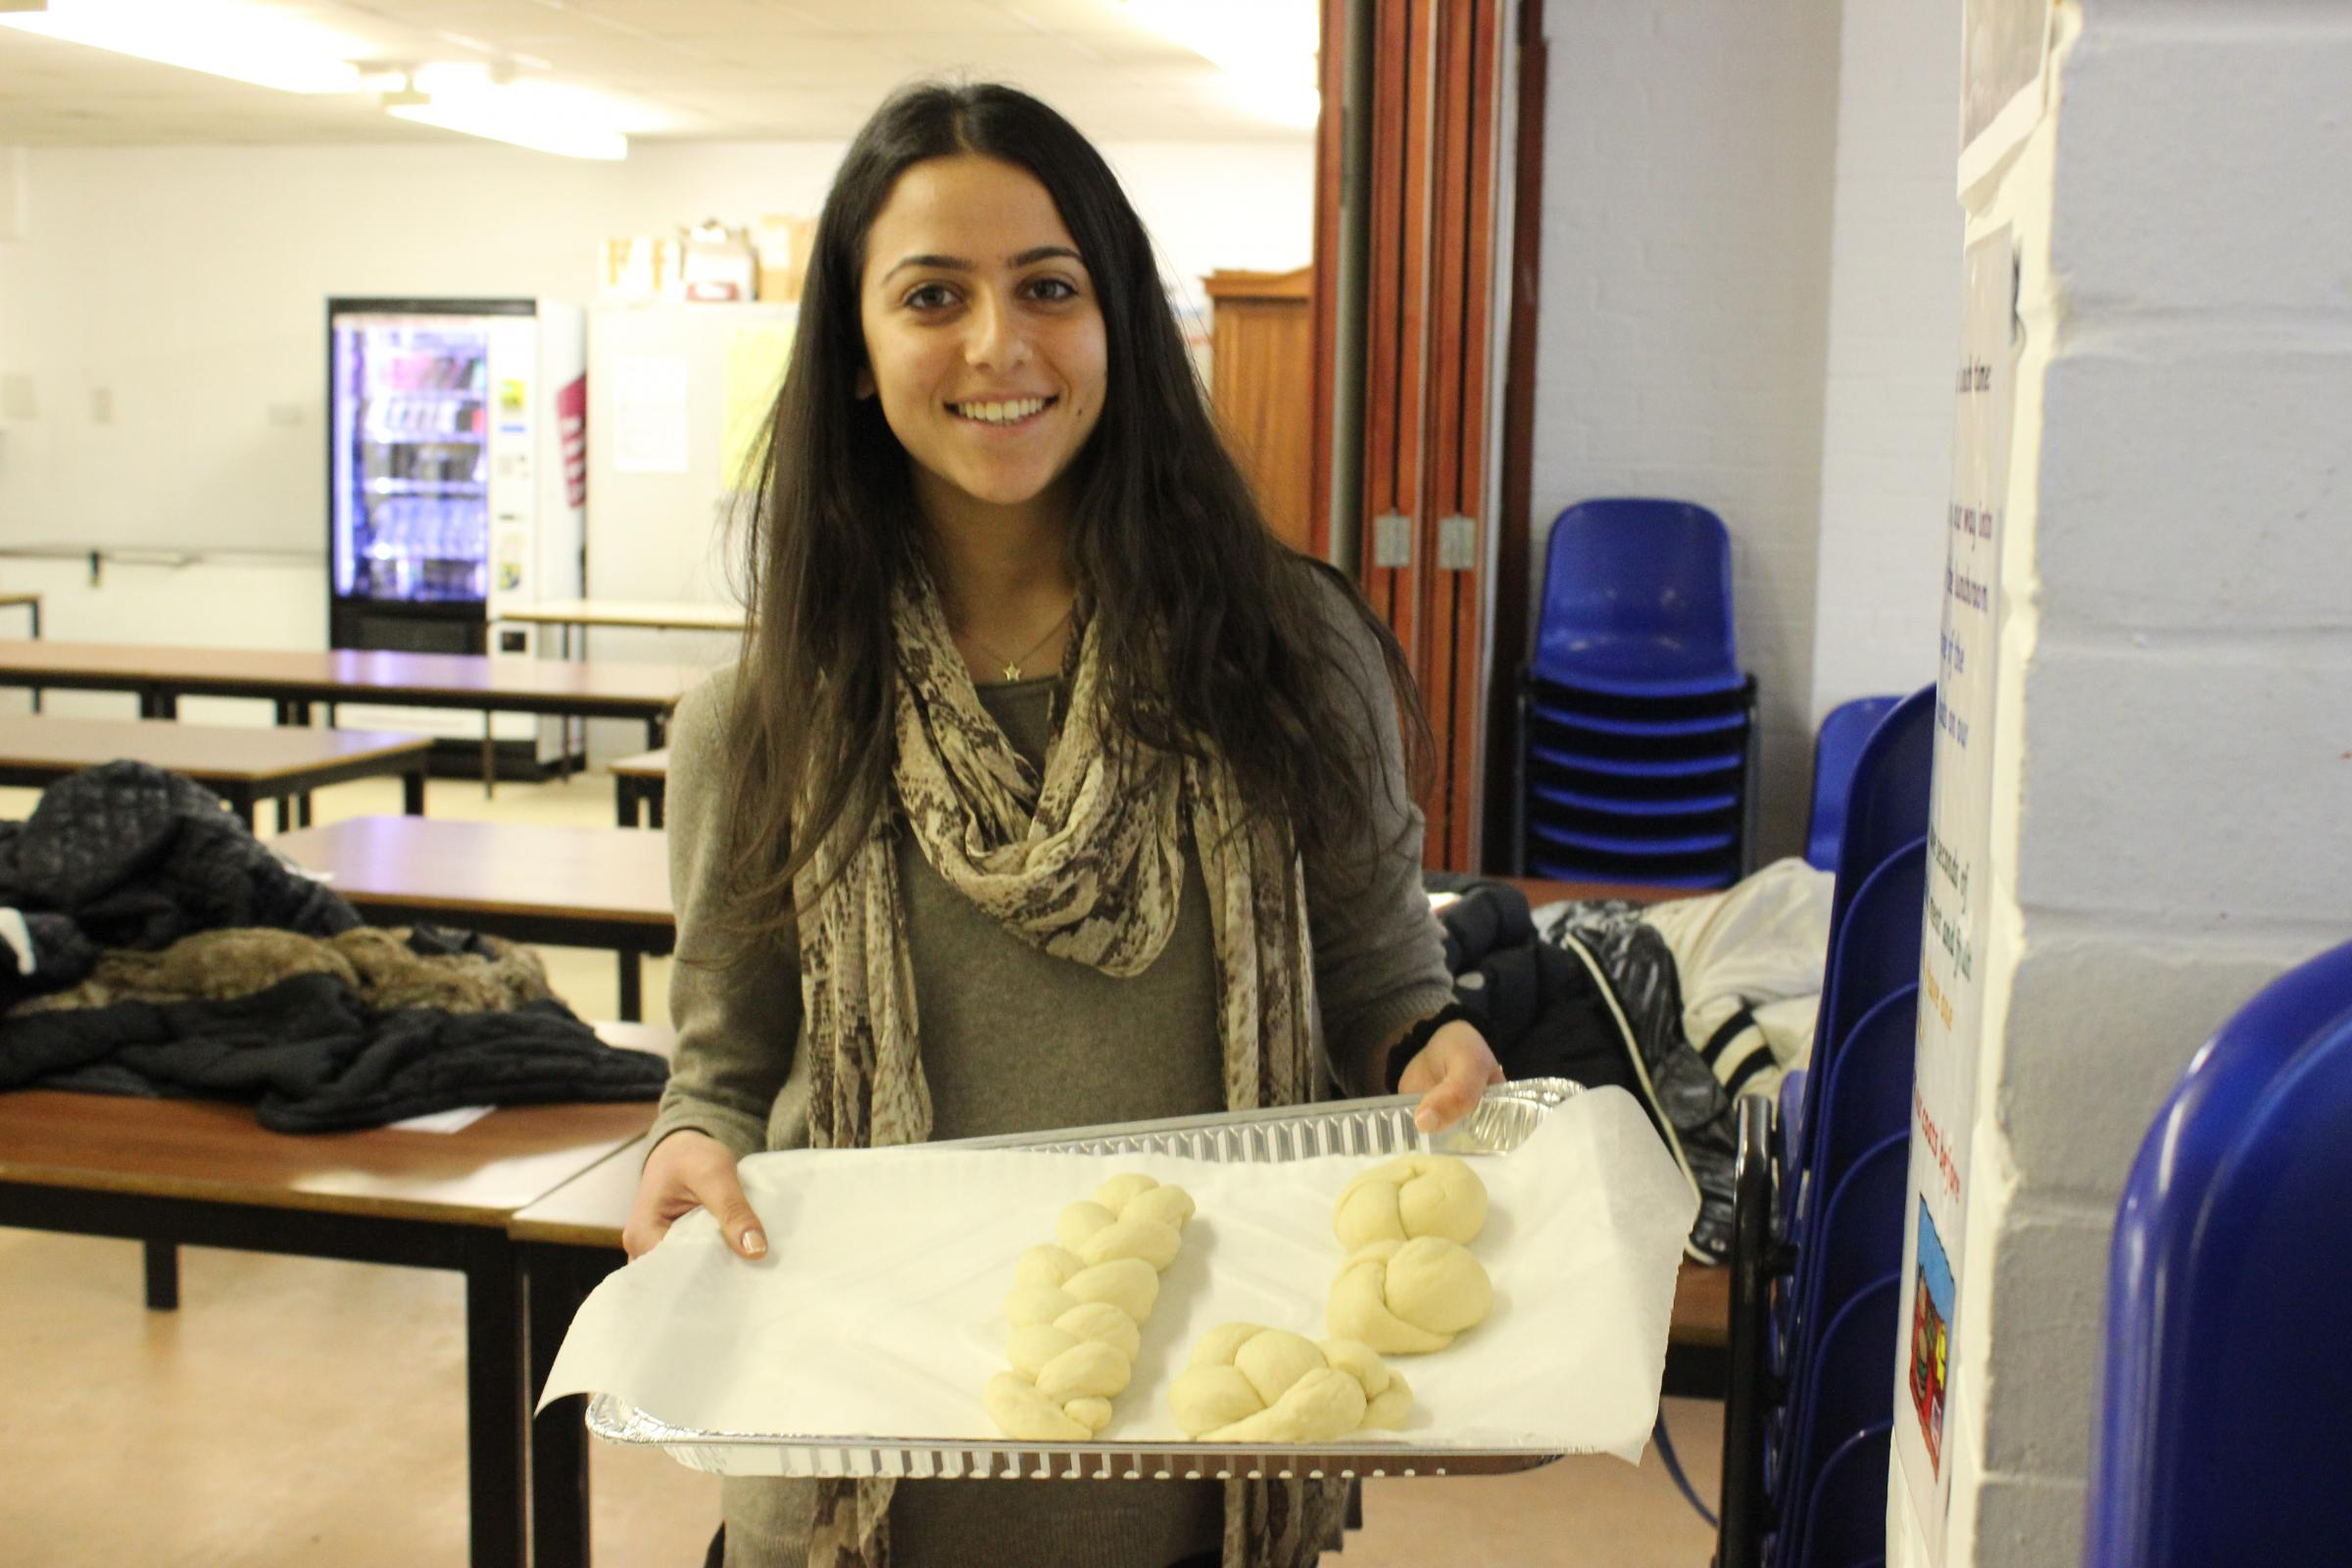 Immanuel College psychology students bake to beat stress